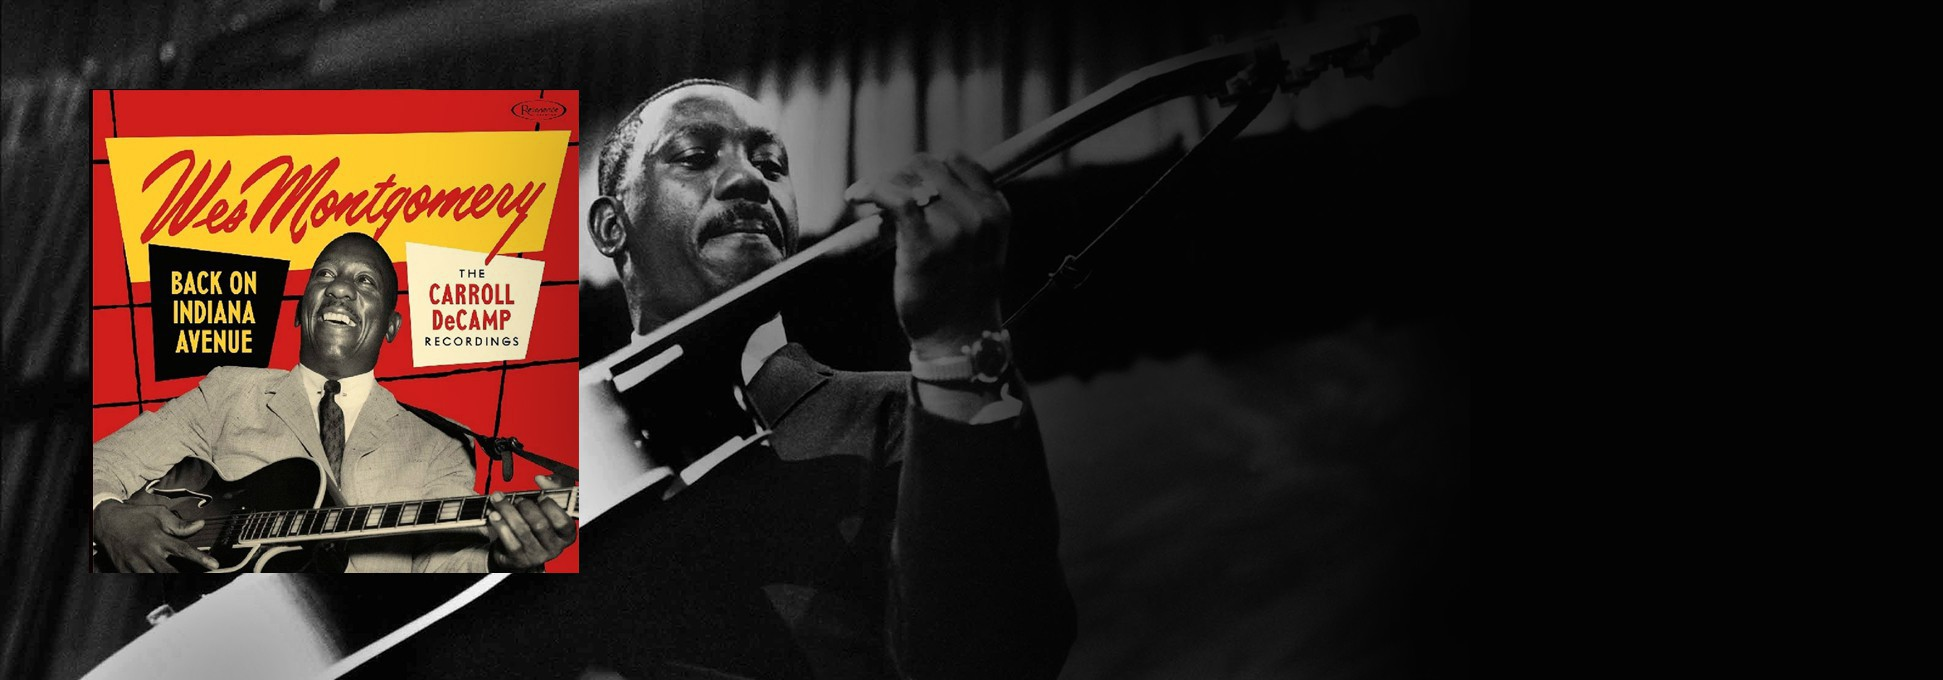 Wes Montgomery Back on the Indiana Avenue